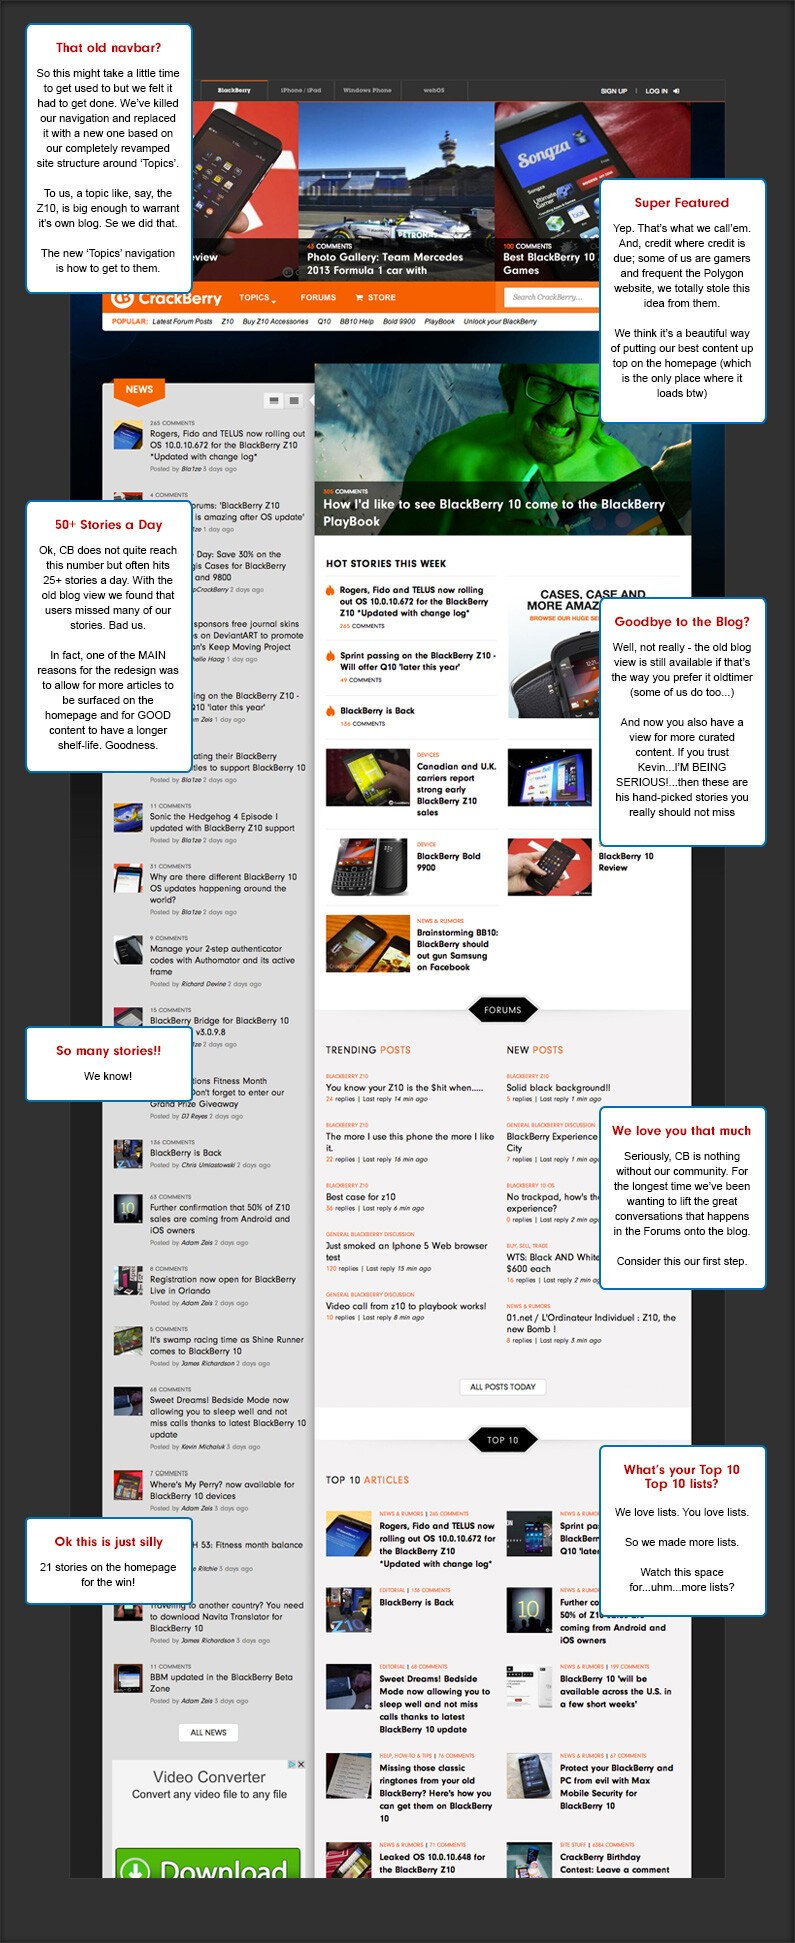 notes on the CrackBerry redesign homepage